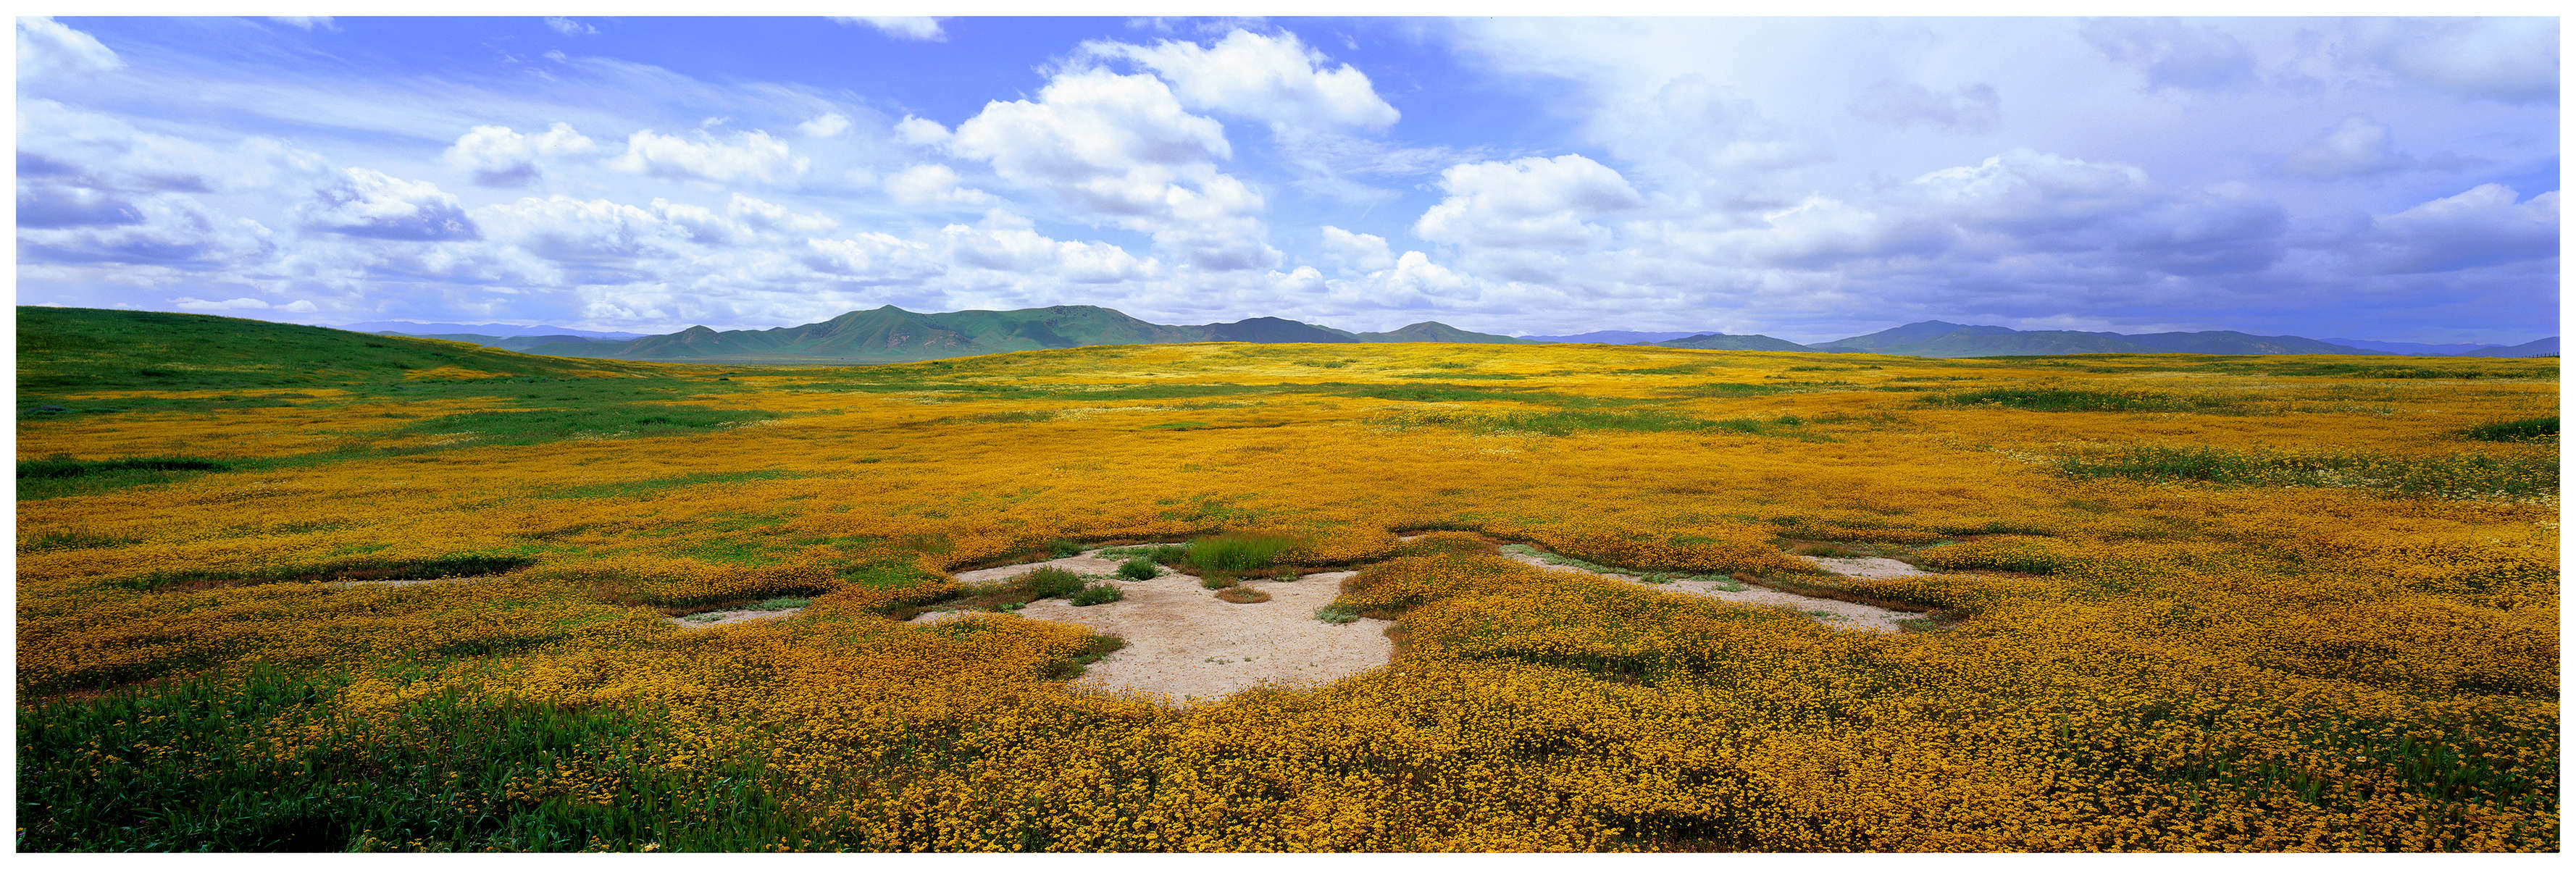 Goldfields blooming in the Carrizo Plains.